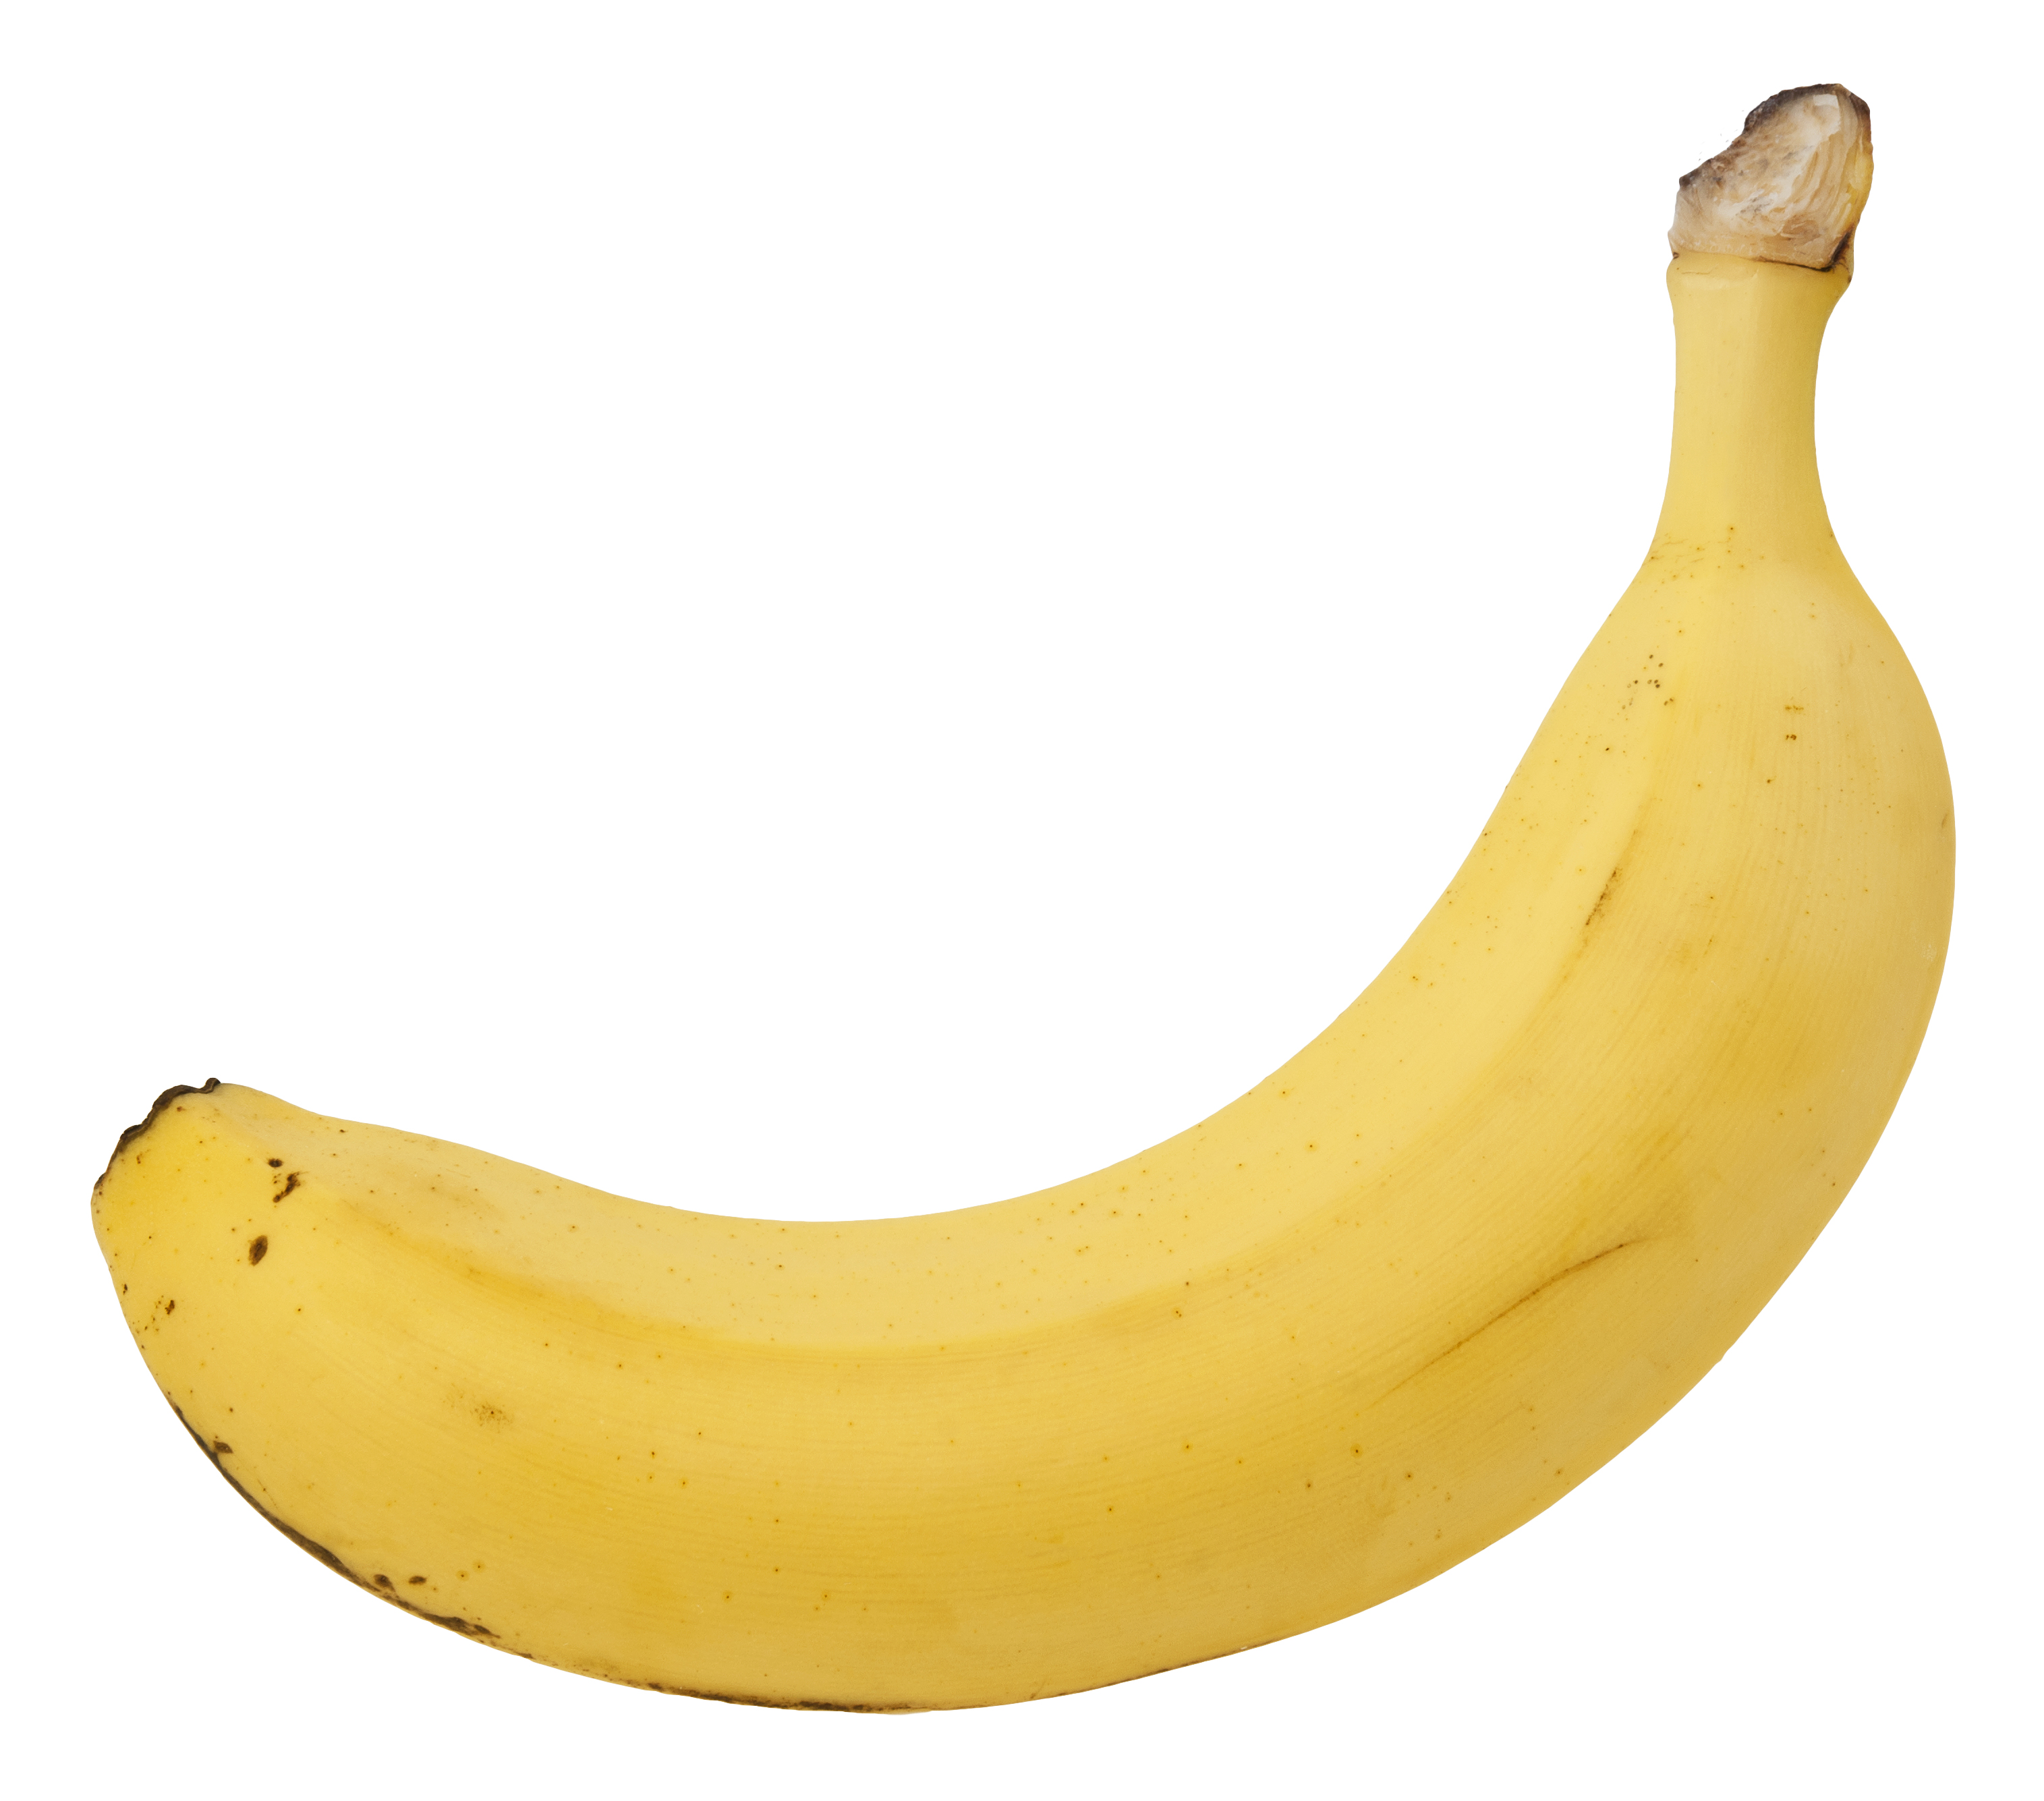 File:Banana-Single.jpg - Wikimedia Commons